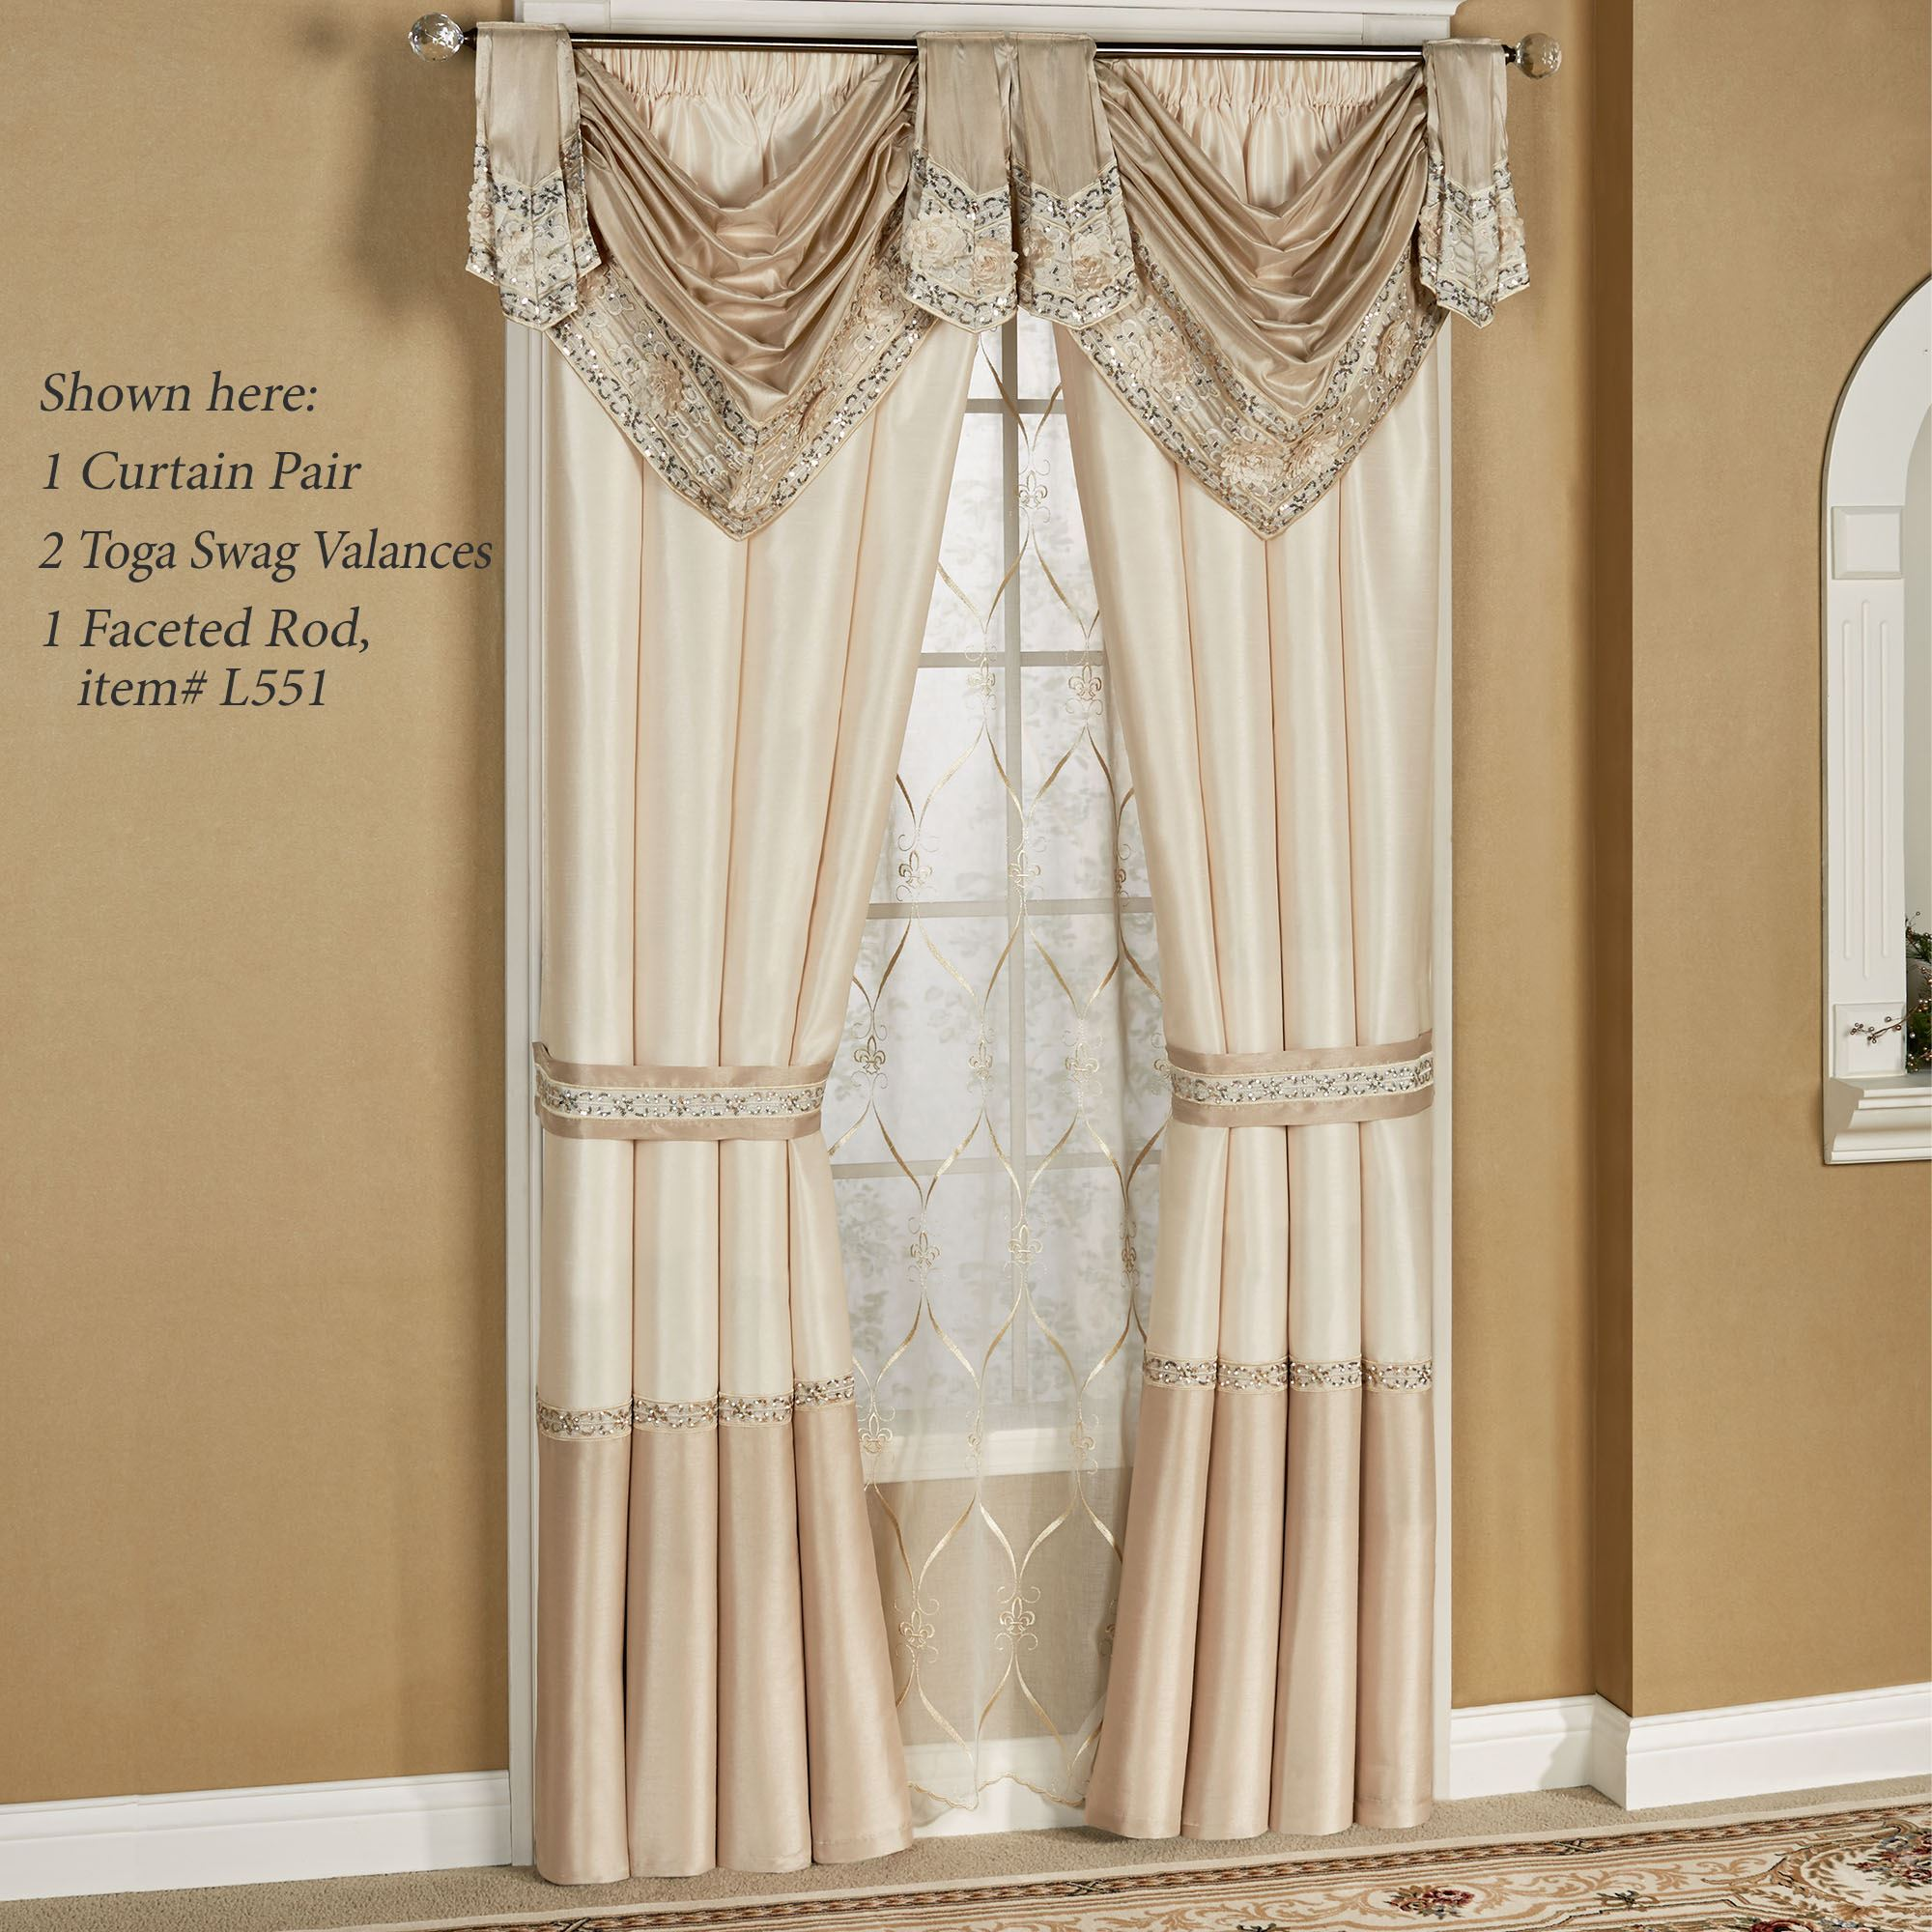 Elegant Kitchen Curtains Valances: Elegante Toga Valance Faux Silk Window Treatment